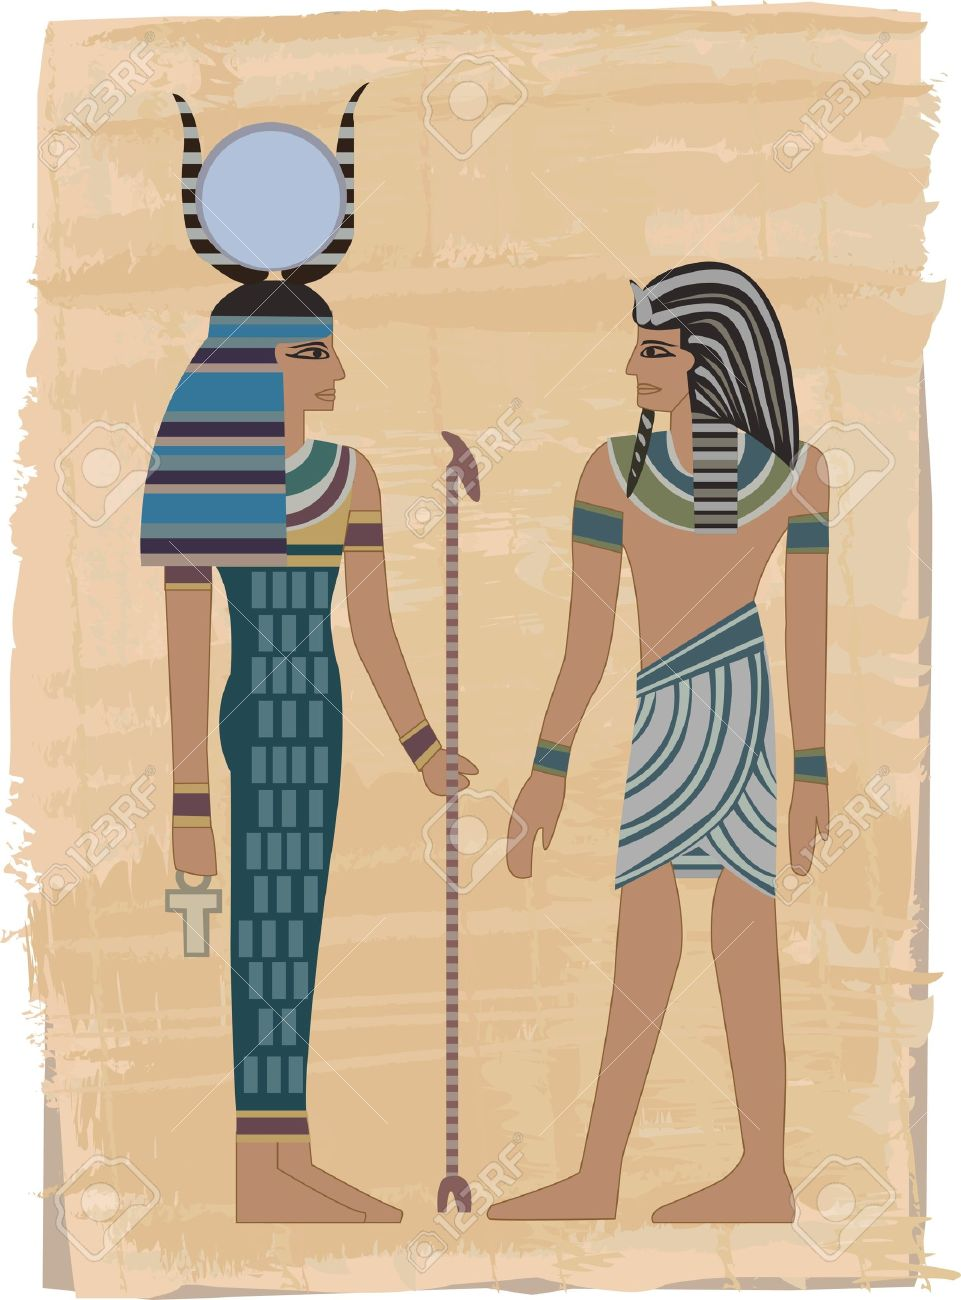 pharaoh figures illustrated on papyrus royalty free cliparts